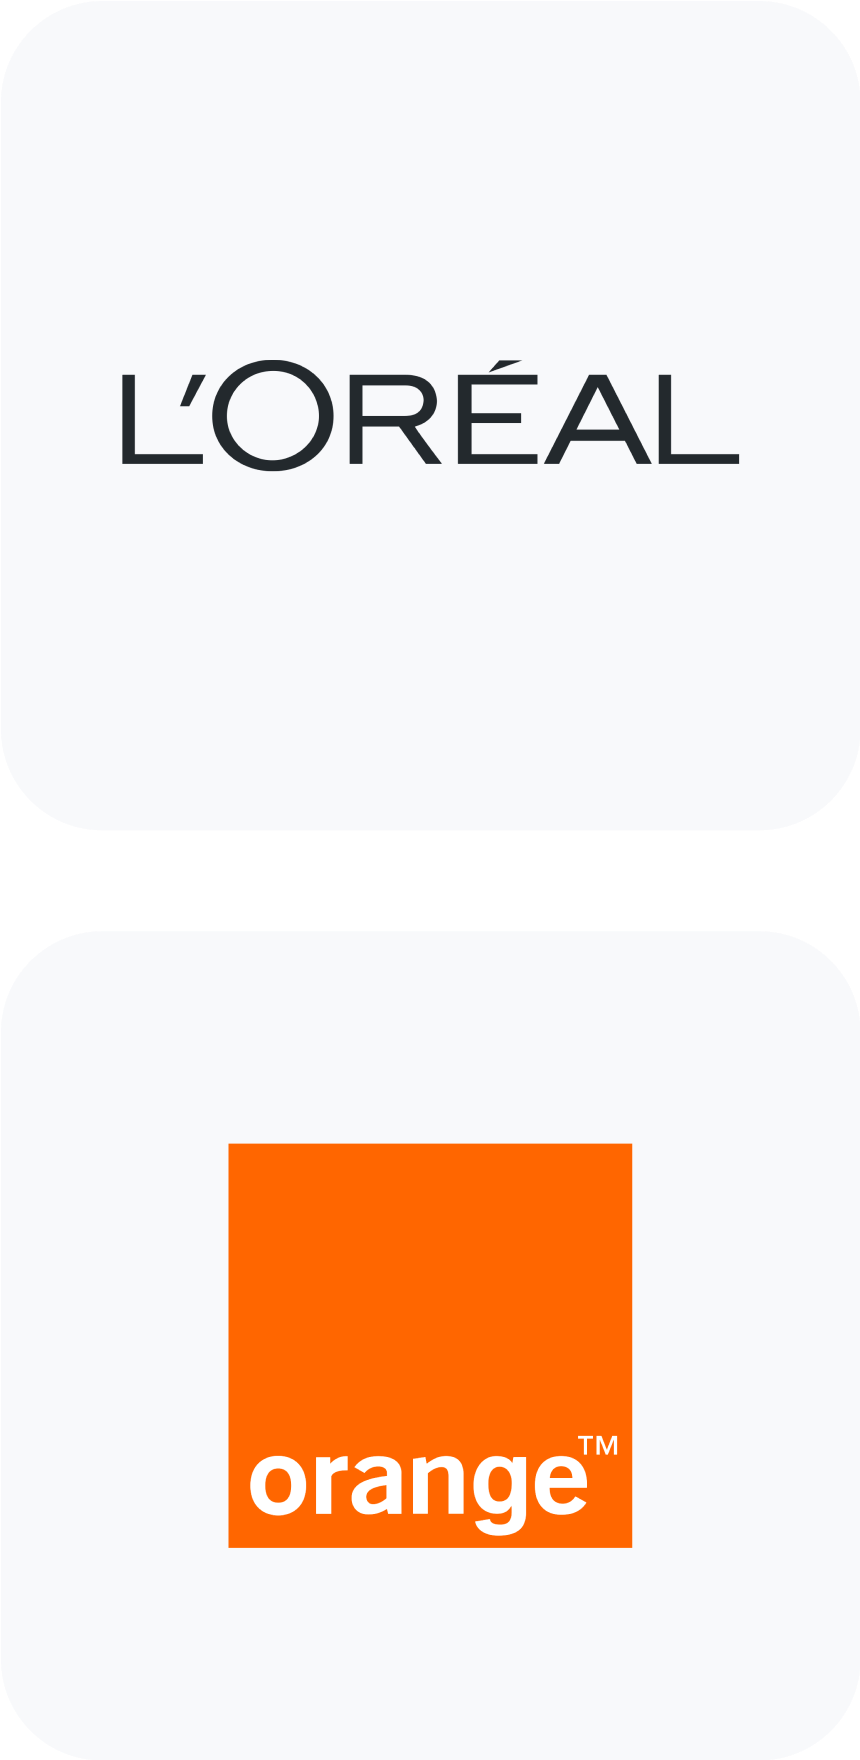 L'Oreal and Orange Clients List